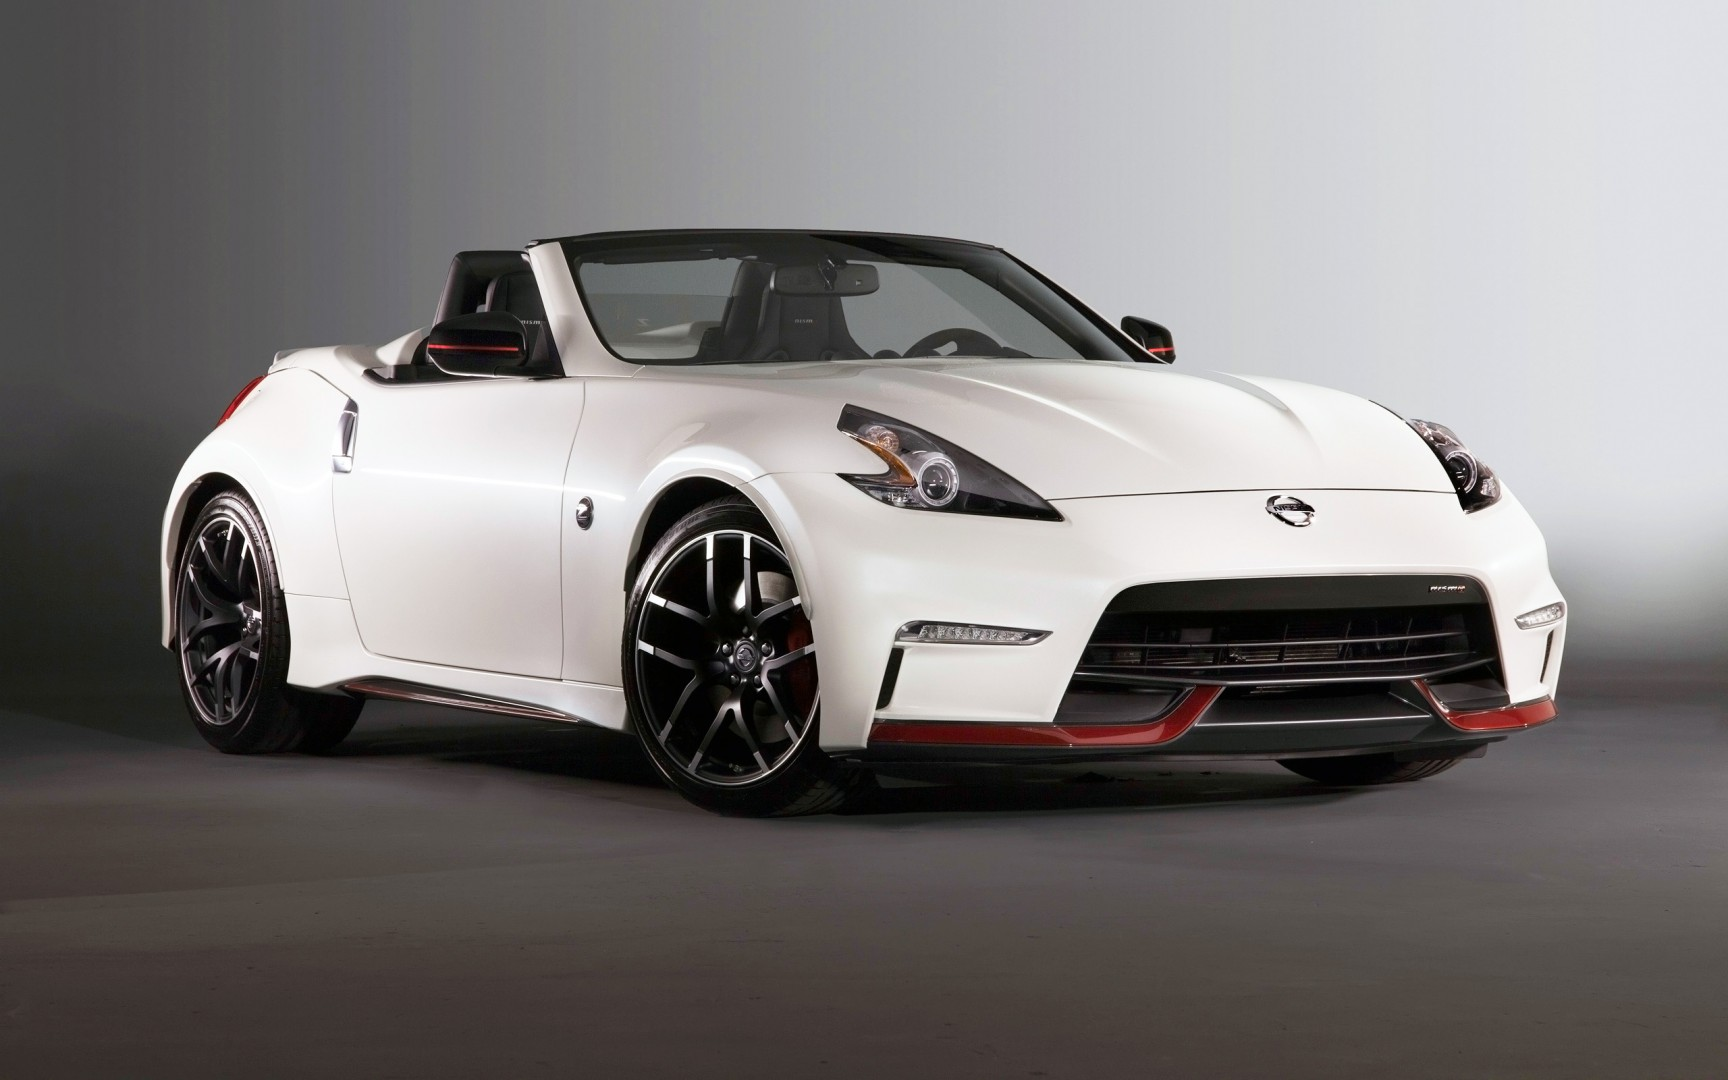 2019 Nissan 370Z Nismo Roadster Concept photo - 5